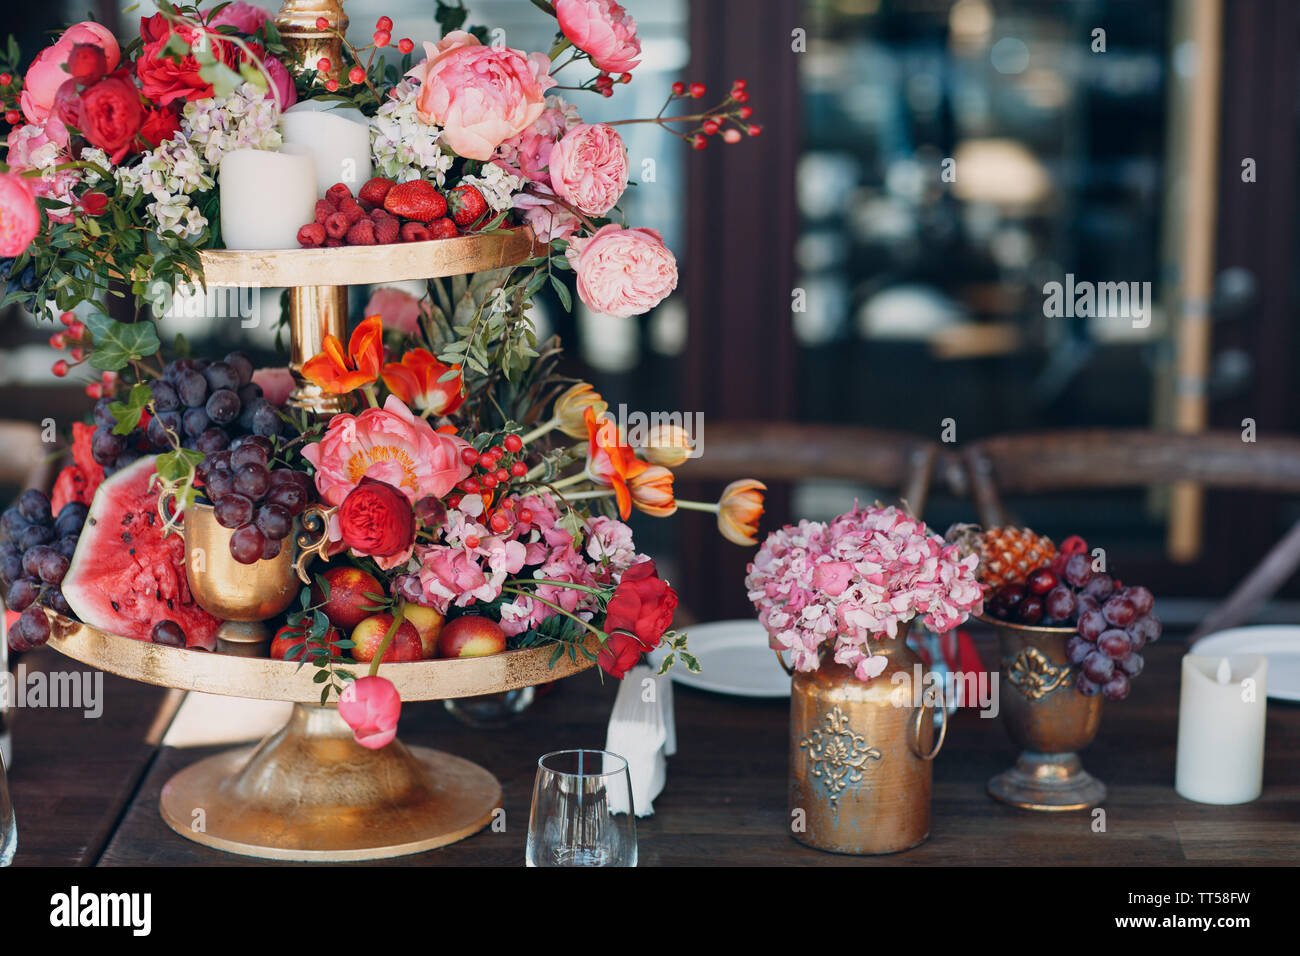 Wedding Table Flowers With Fruits And Berries Decor In Red White Pink Green Colors Stock Photo Alamy